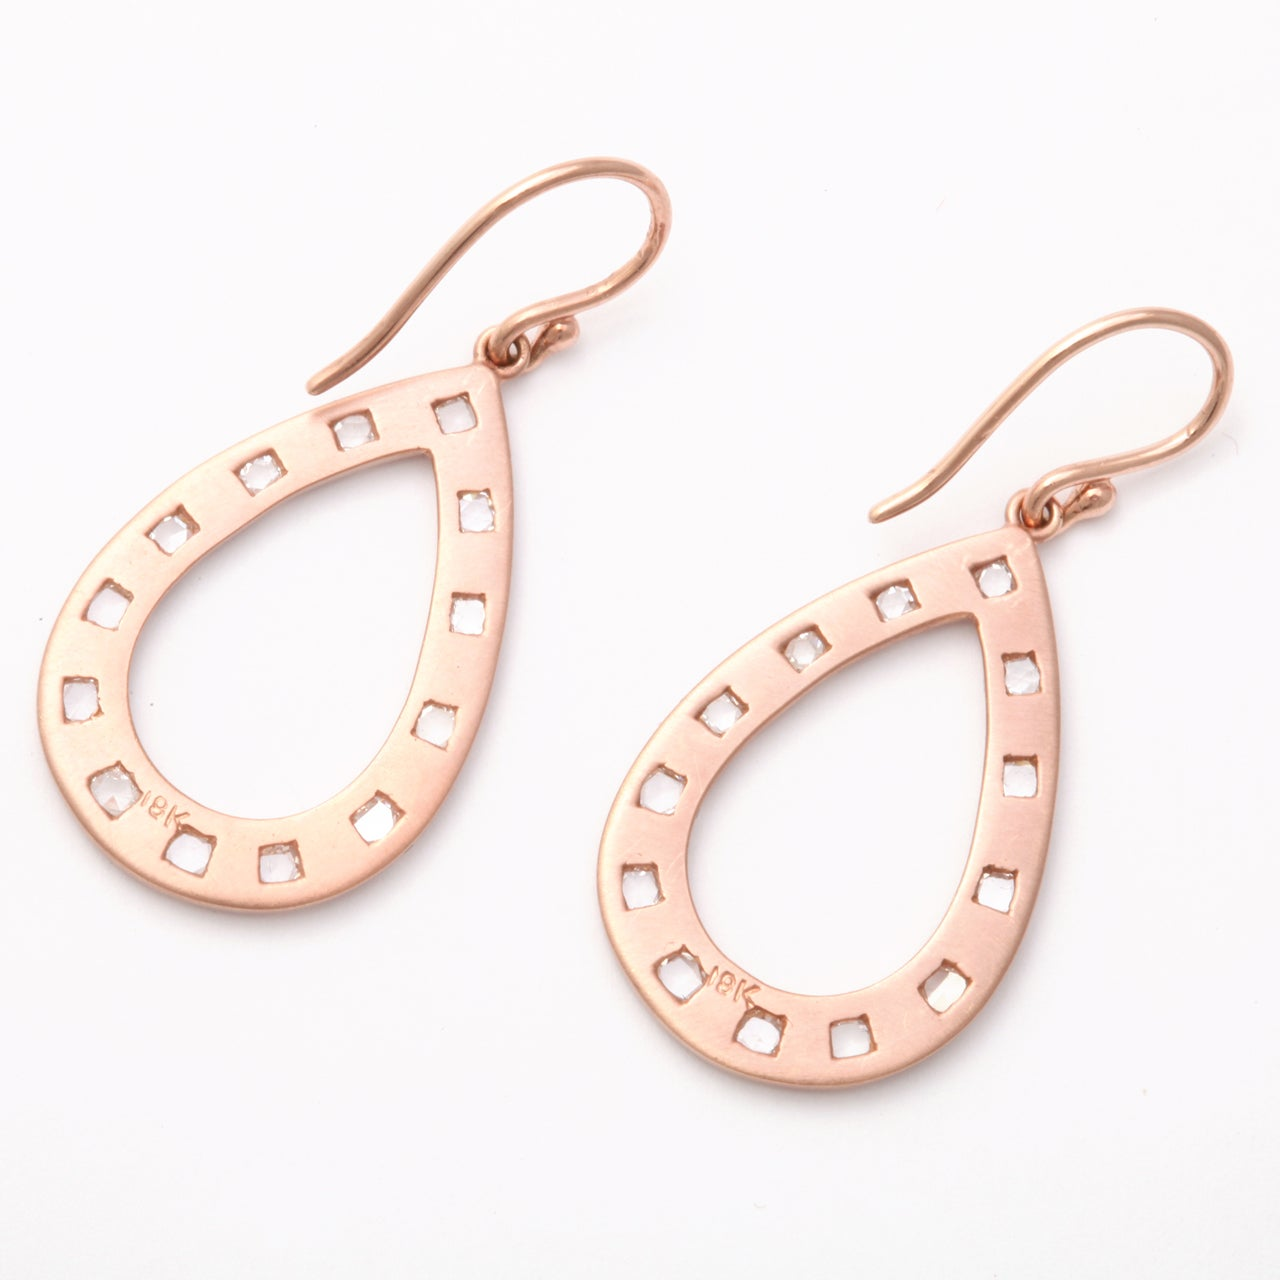 Rose Gold and Rose Cut Diamond Earrings For Sale 2